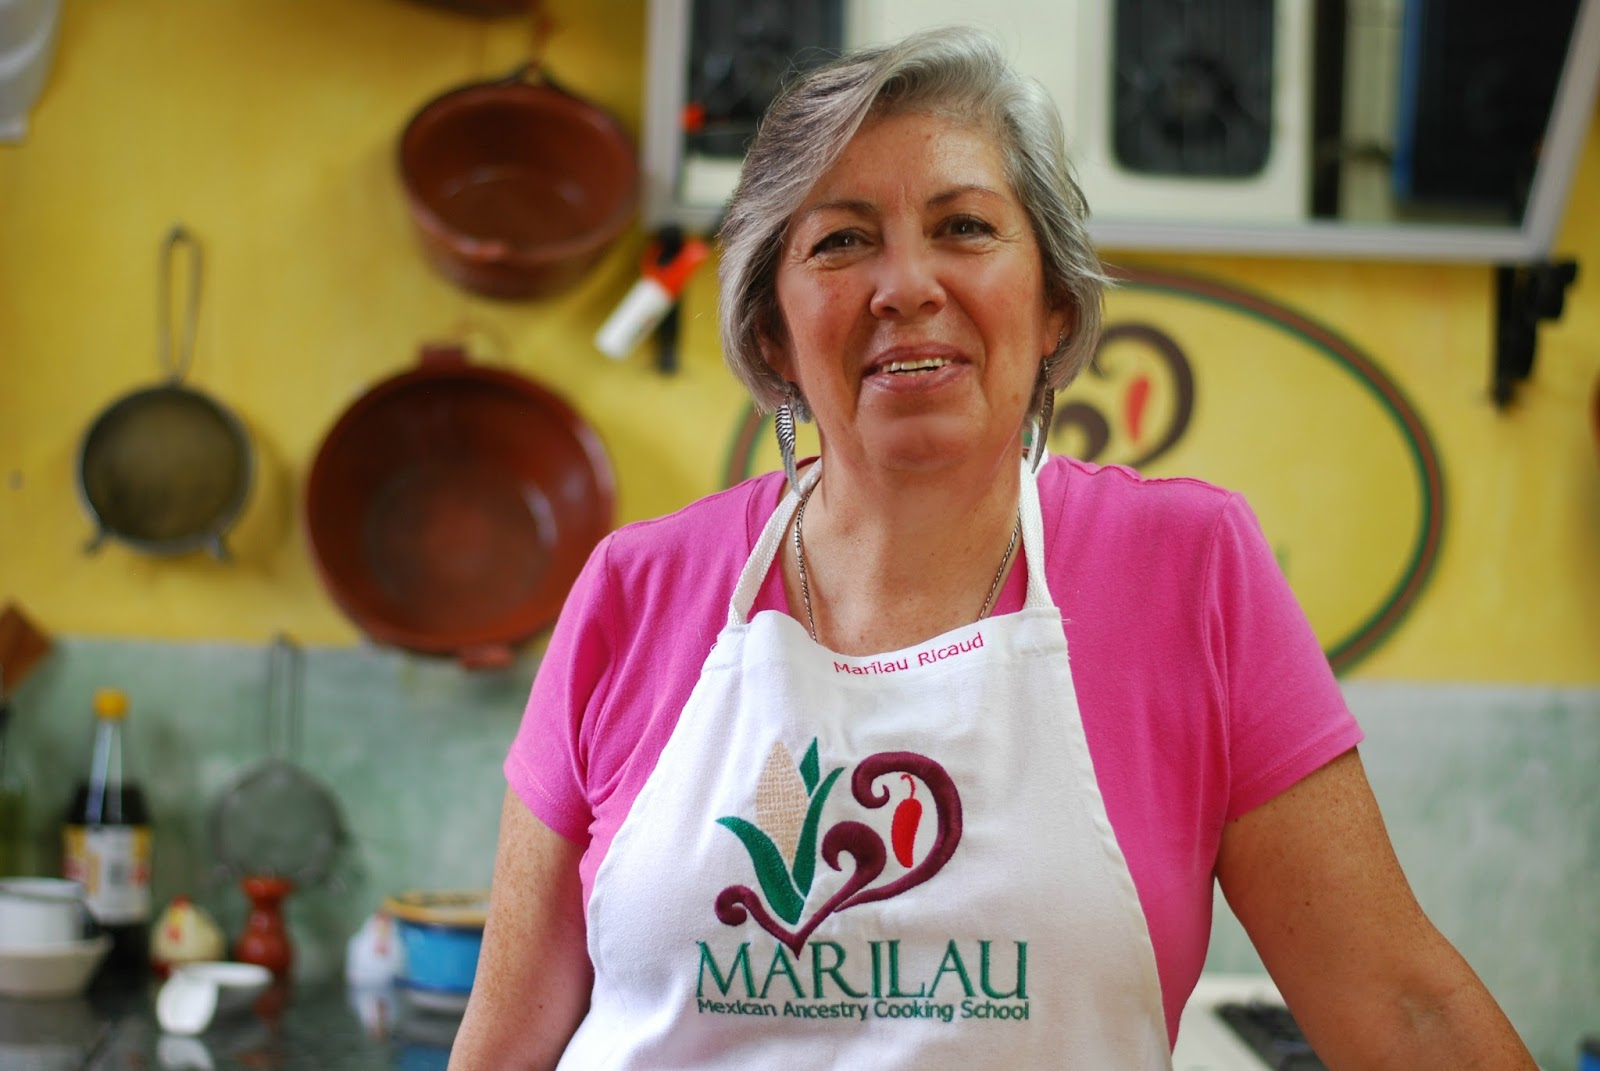 Cucina Della Rosa Cooking School Cupcakes And Crablegs A Guide To Cooking Classes In San Miguel De